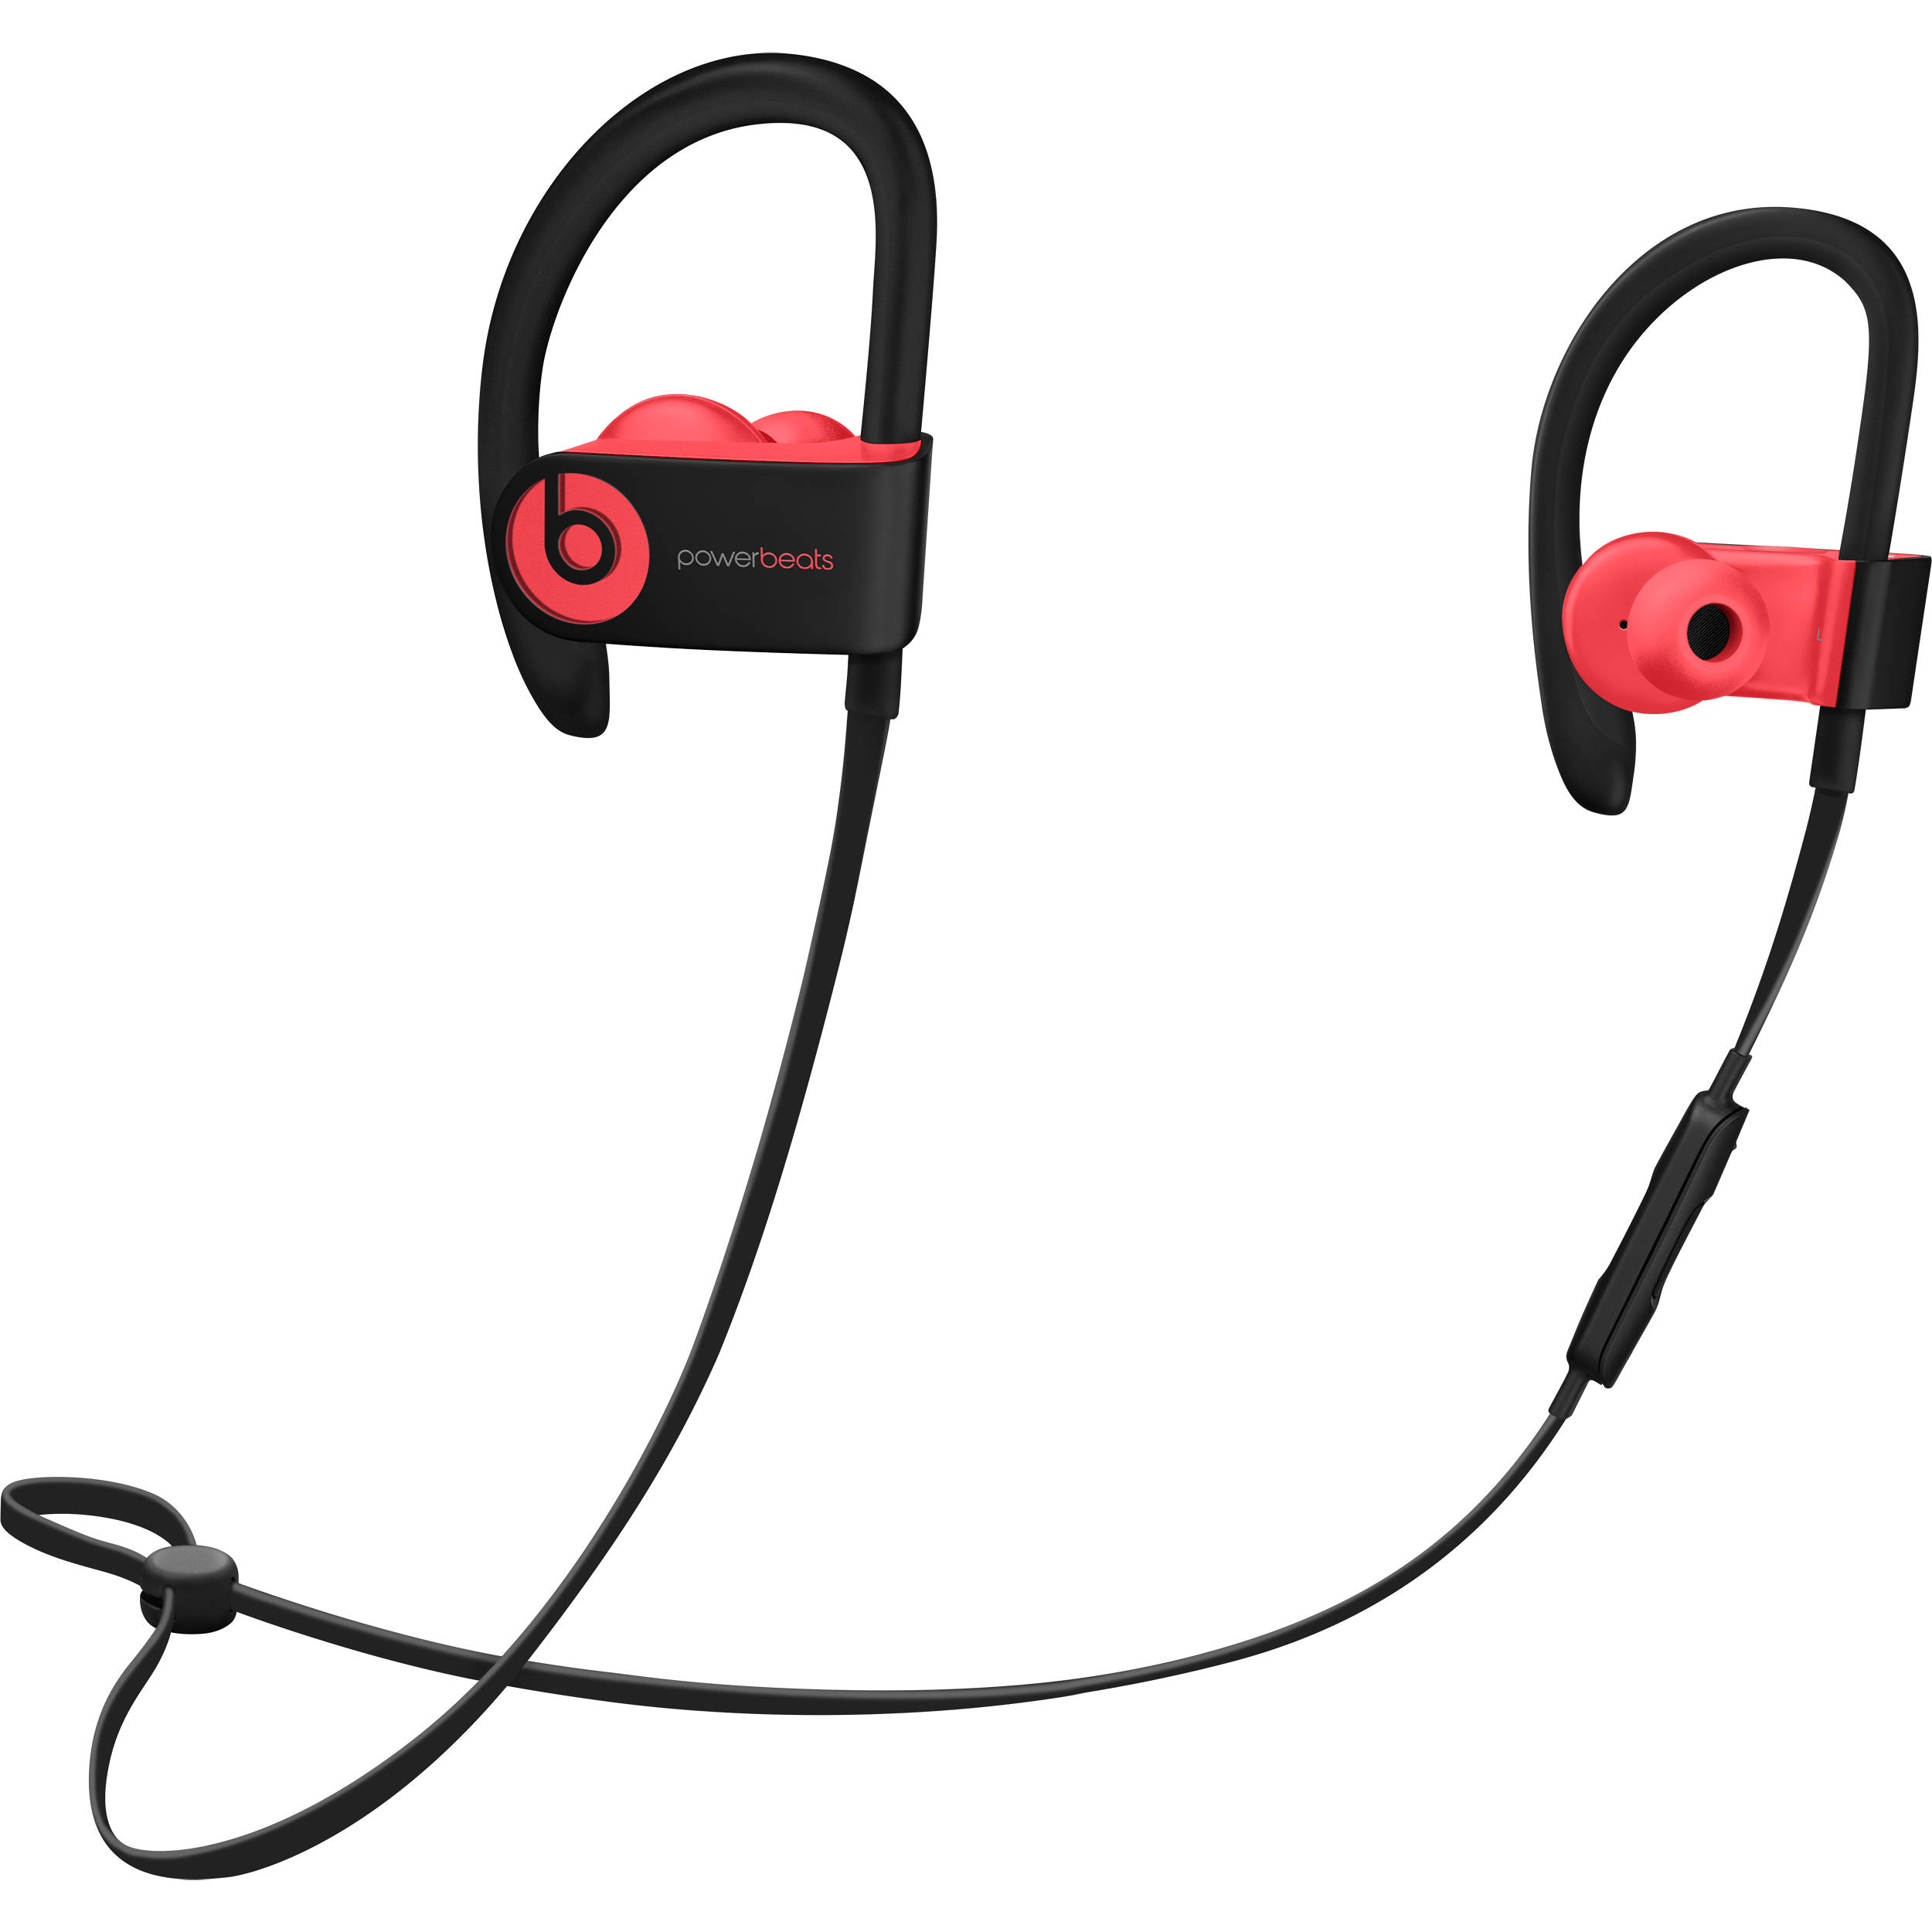 powerbeats 3 serial number